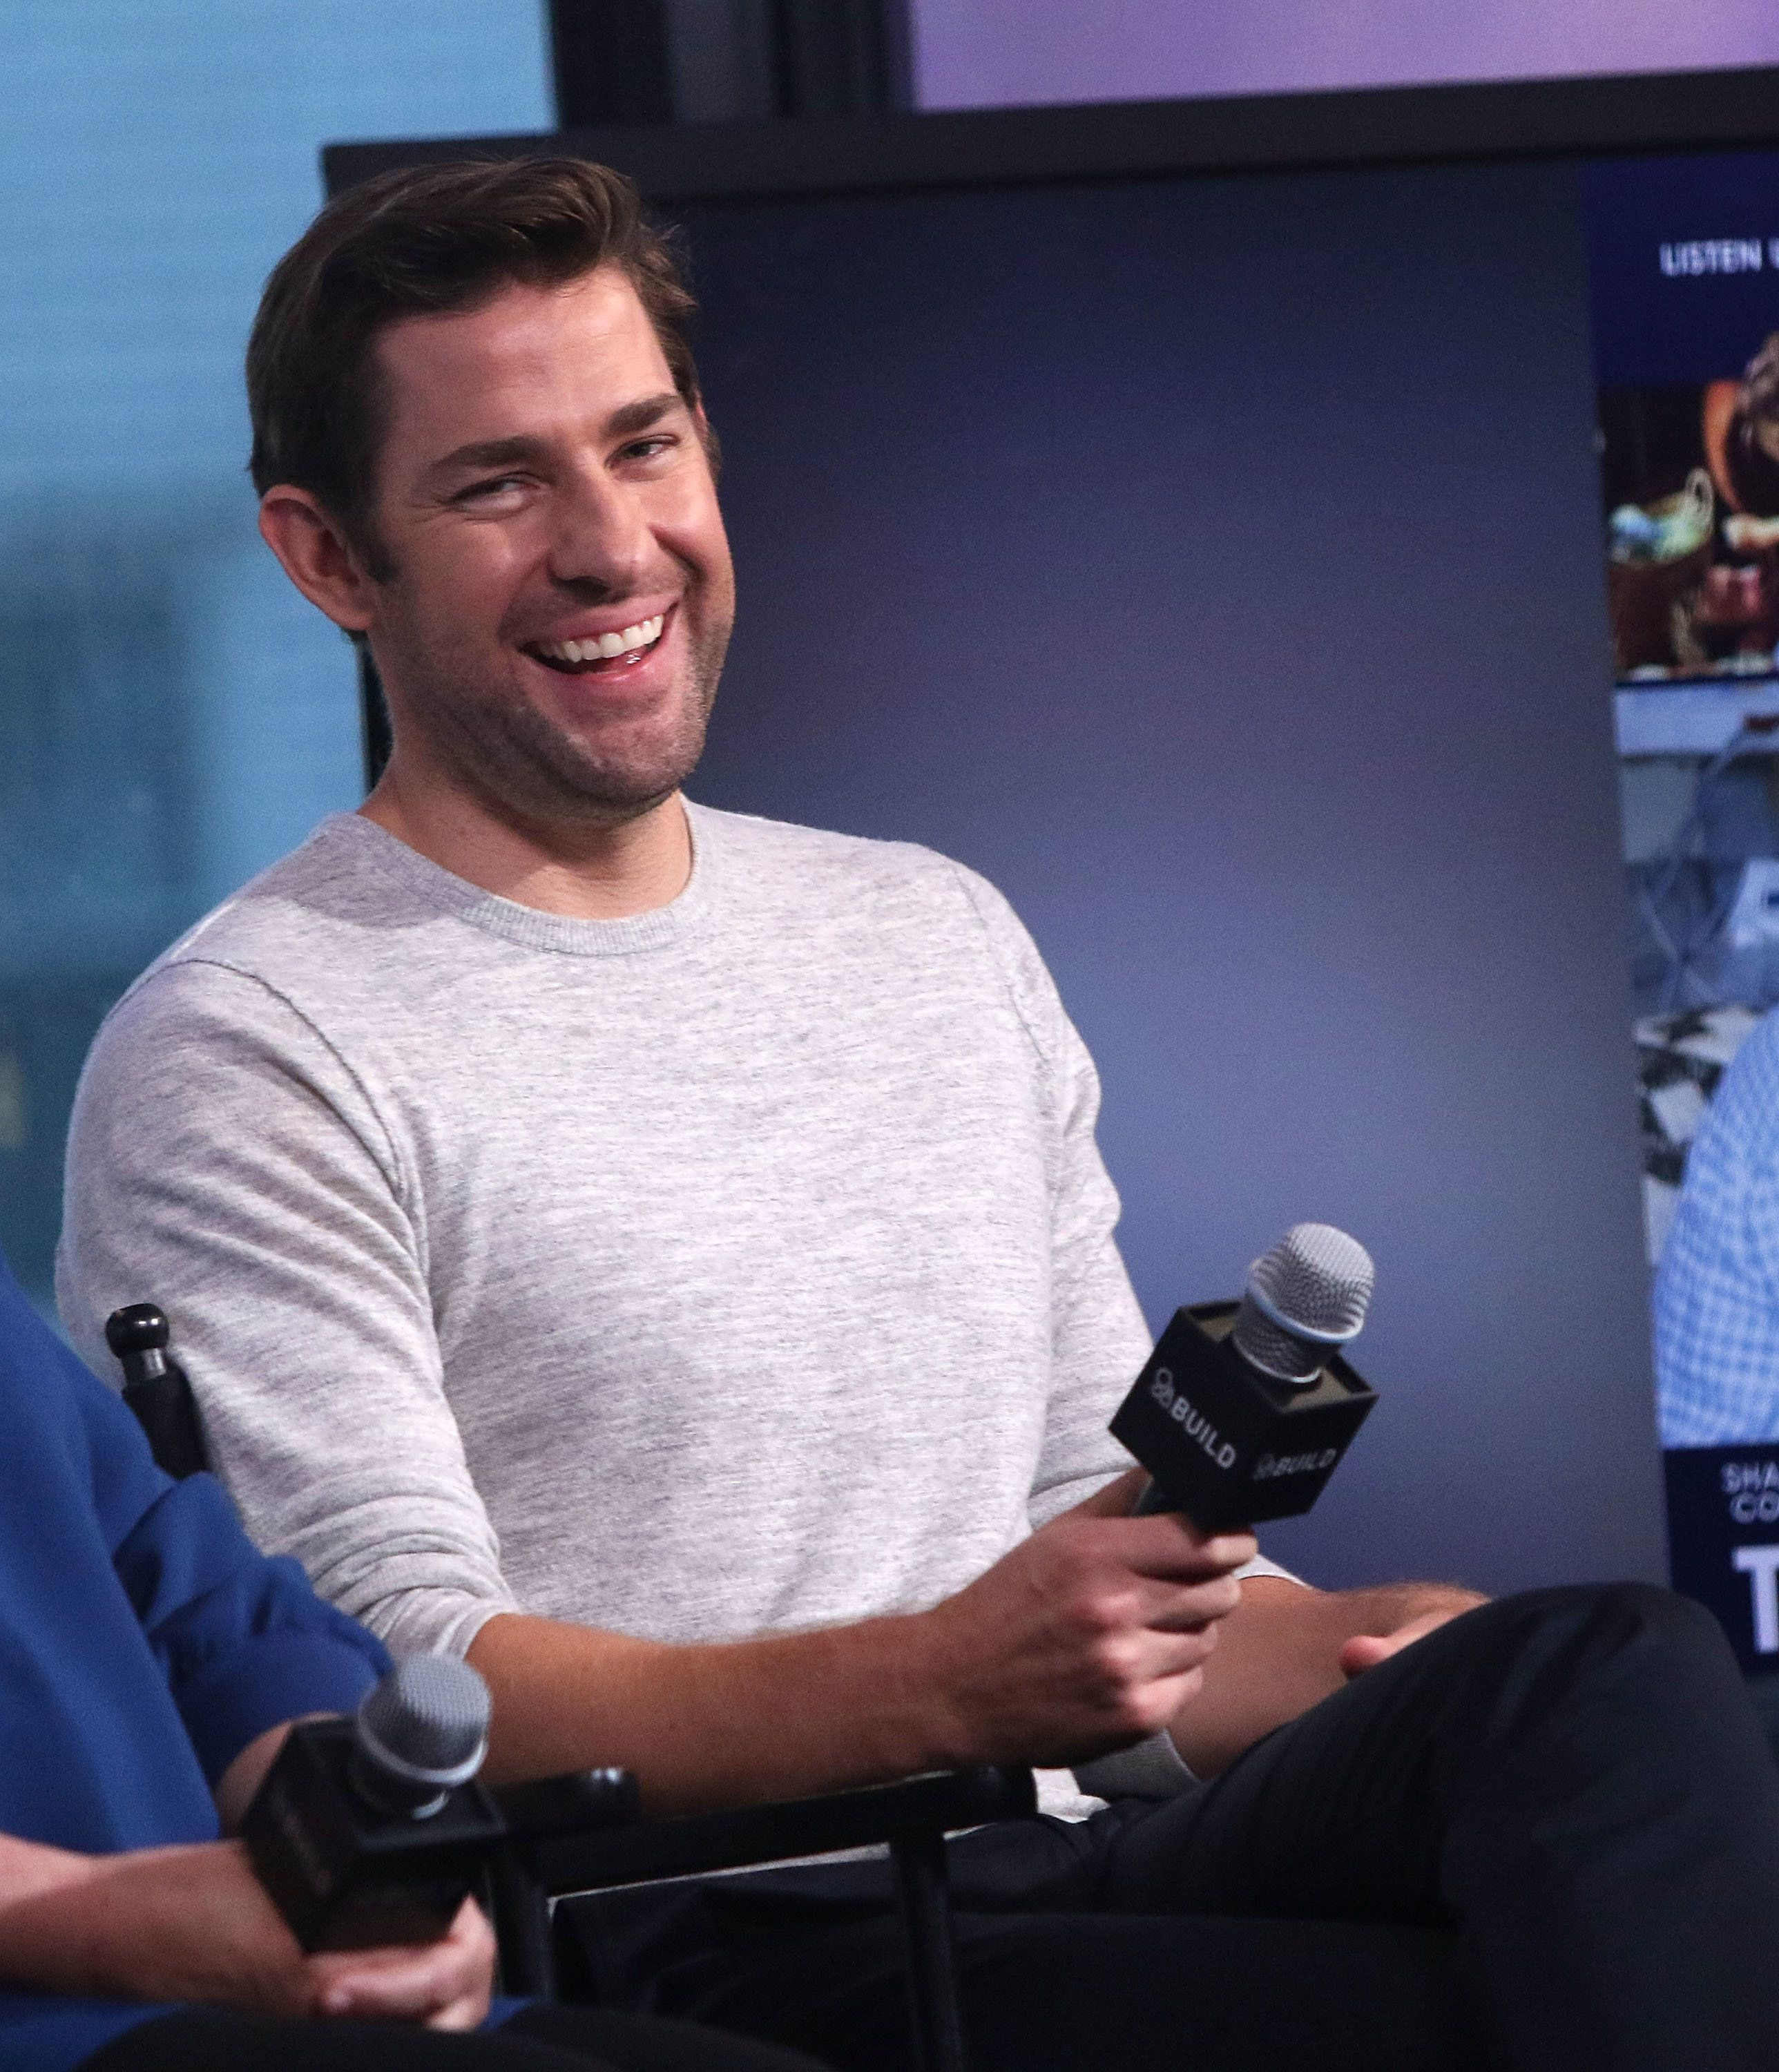 NEW YORK, NY - AUGUST 17:  John Krasinski  attends AOL Build Presents to discuss 'The Hollars' at AOL HQ on August 17, 2016 in New York City.  (Photo by Laura Cavanaugh/FilmMagic)